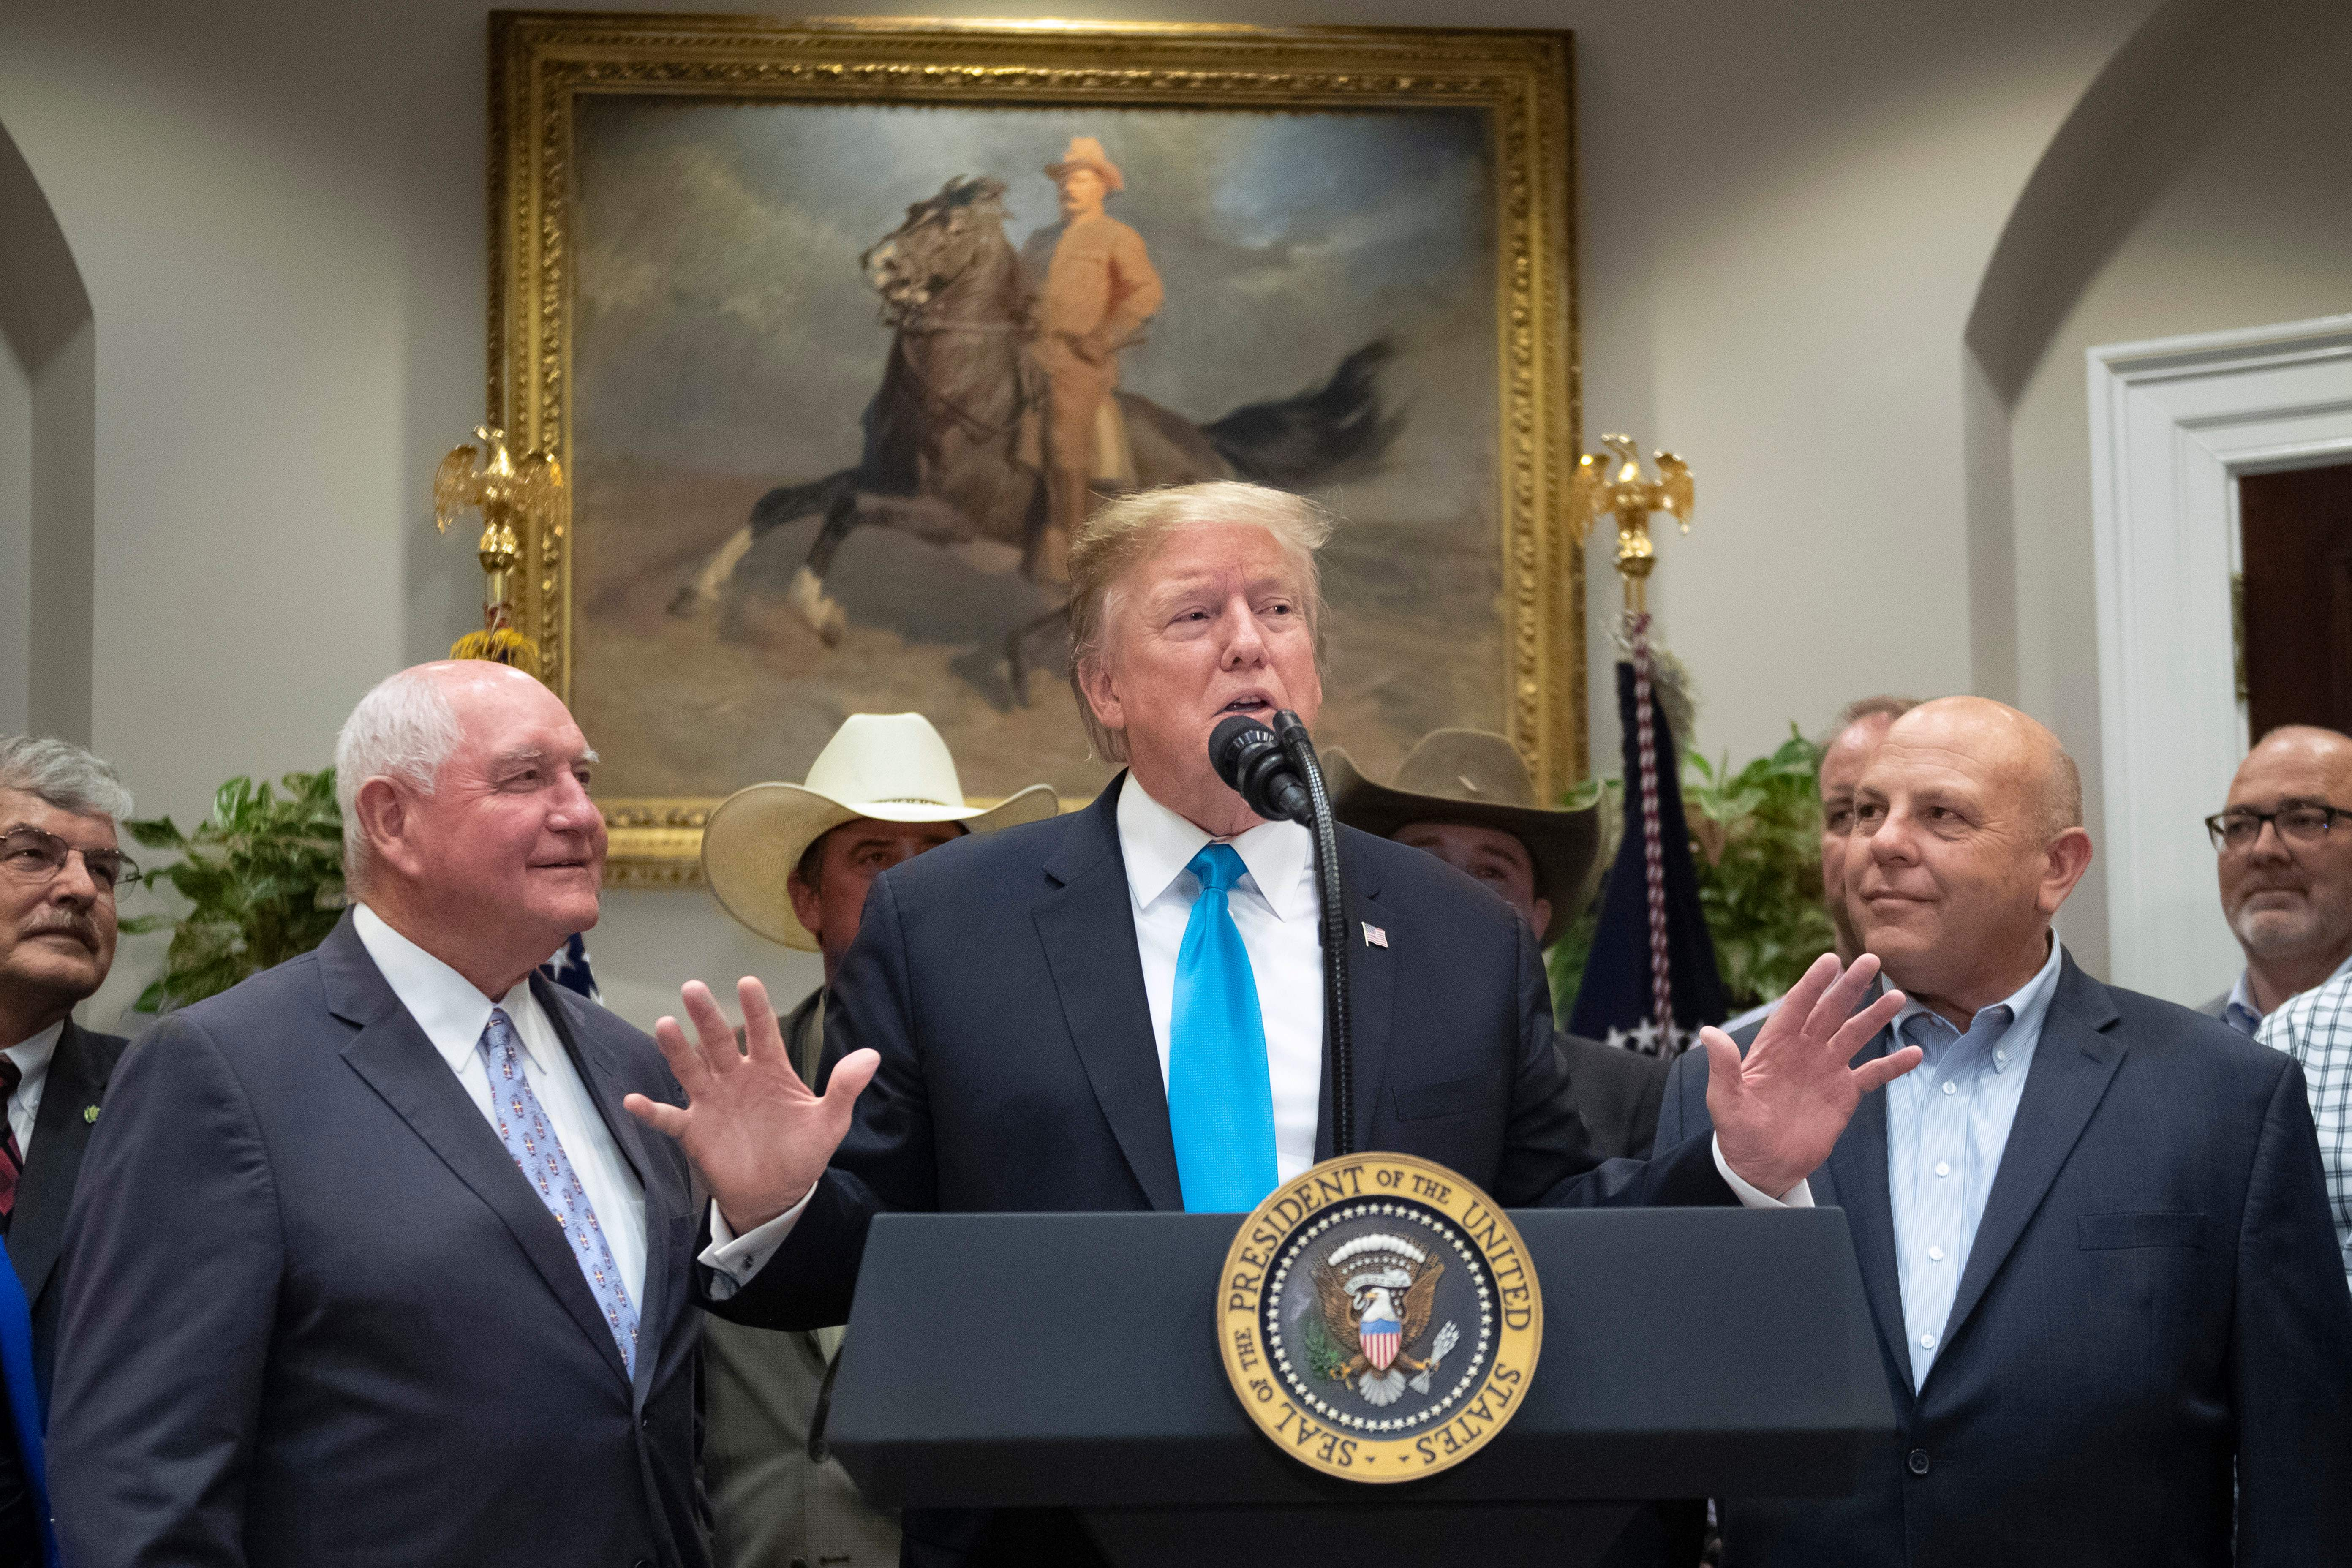 Trump promises more aid for farmers in 2020 as China trade